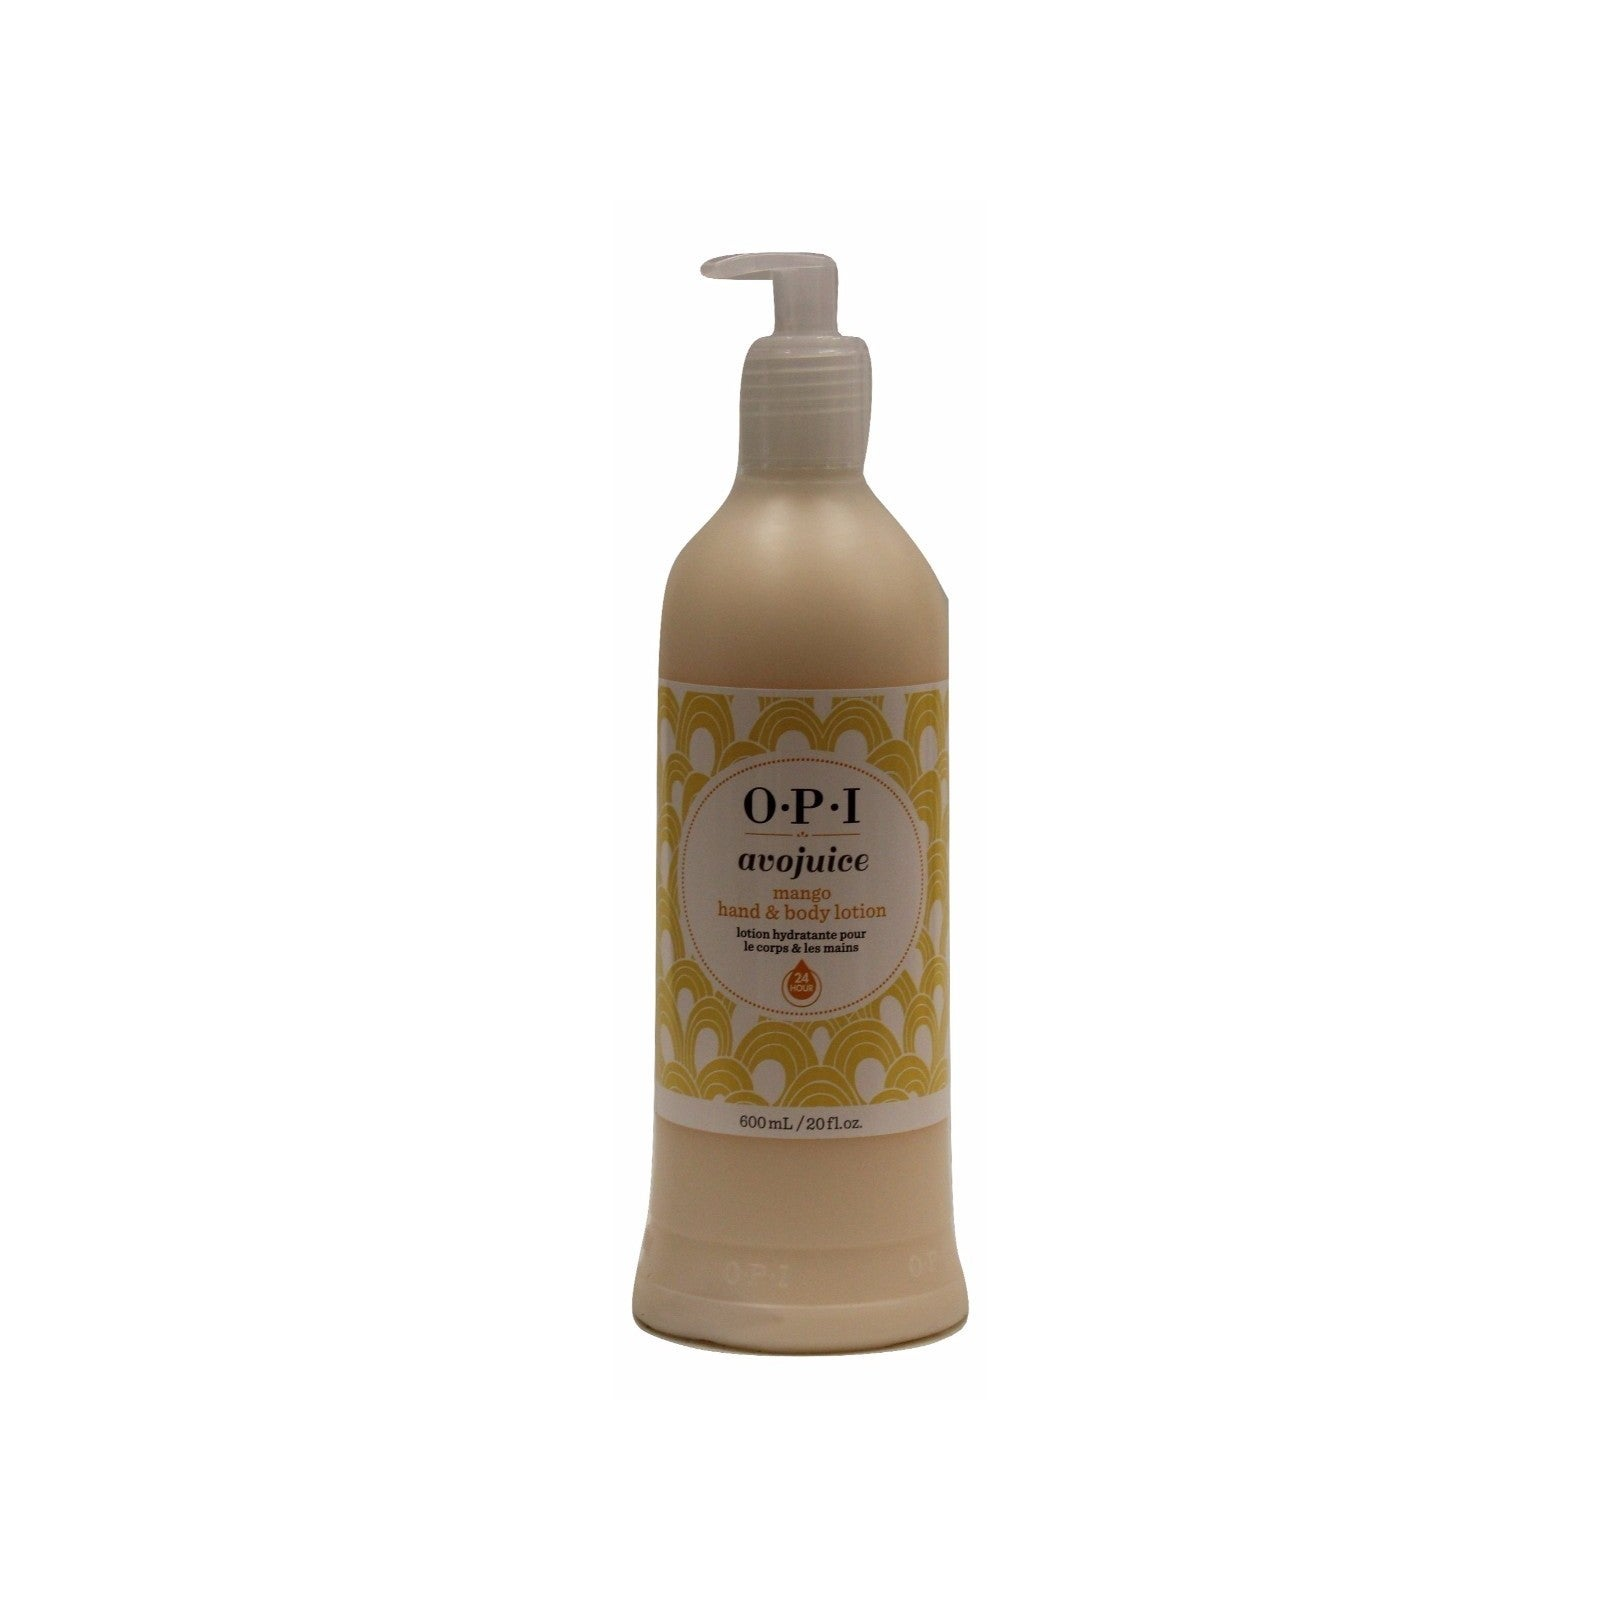 OPI Avojuice Mango (Orange) 20-ounce Hand & Body Lotion (...